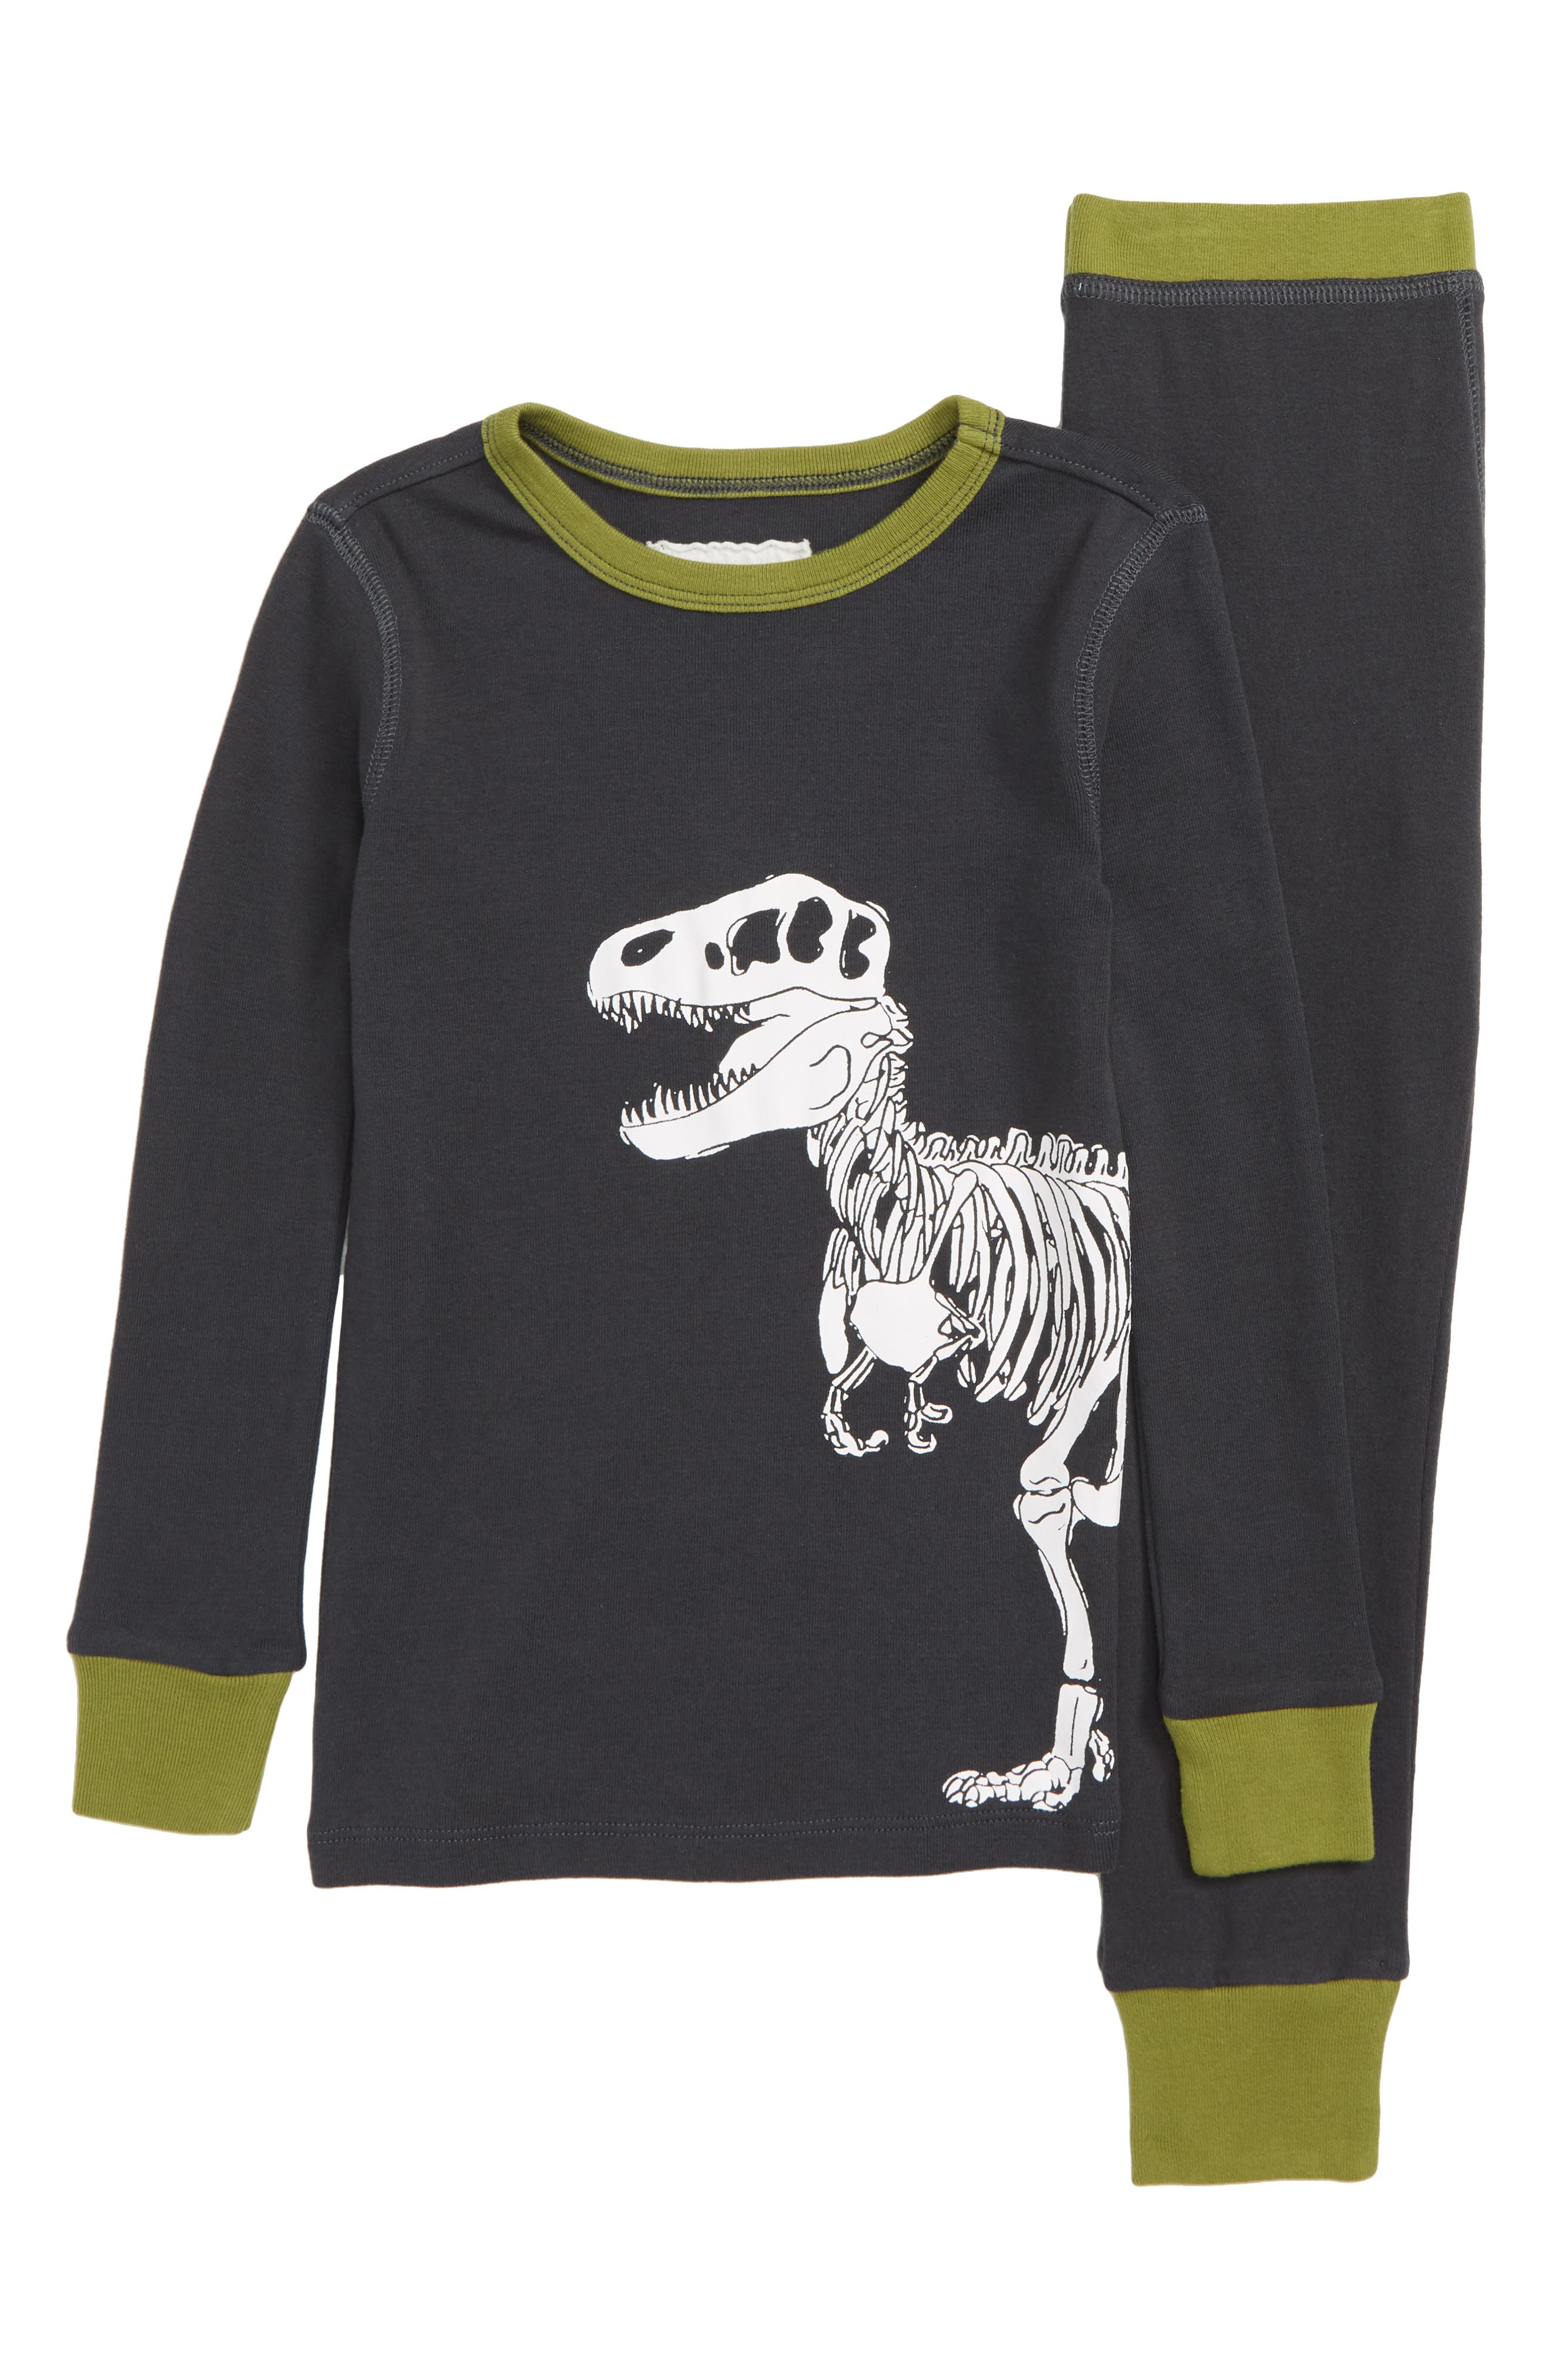 T. Rex Skeleton Fitted Two-Piece Pajamas,                             Main thumbnail 1, color,                             001